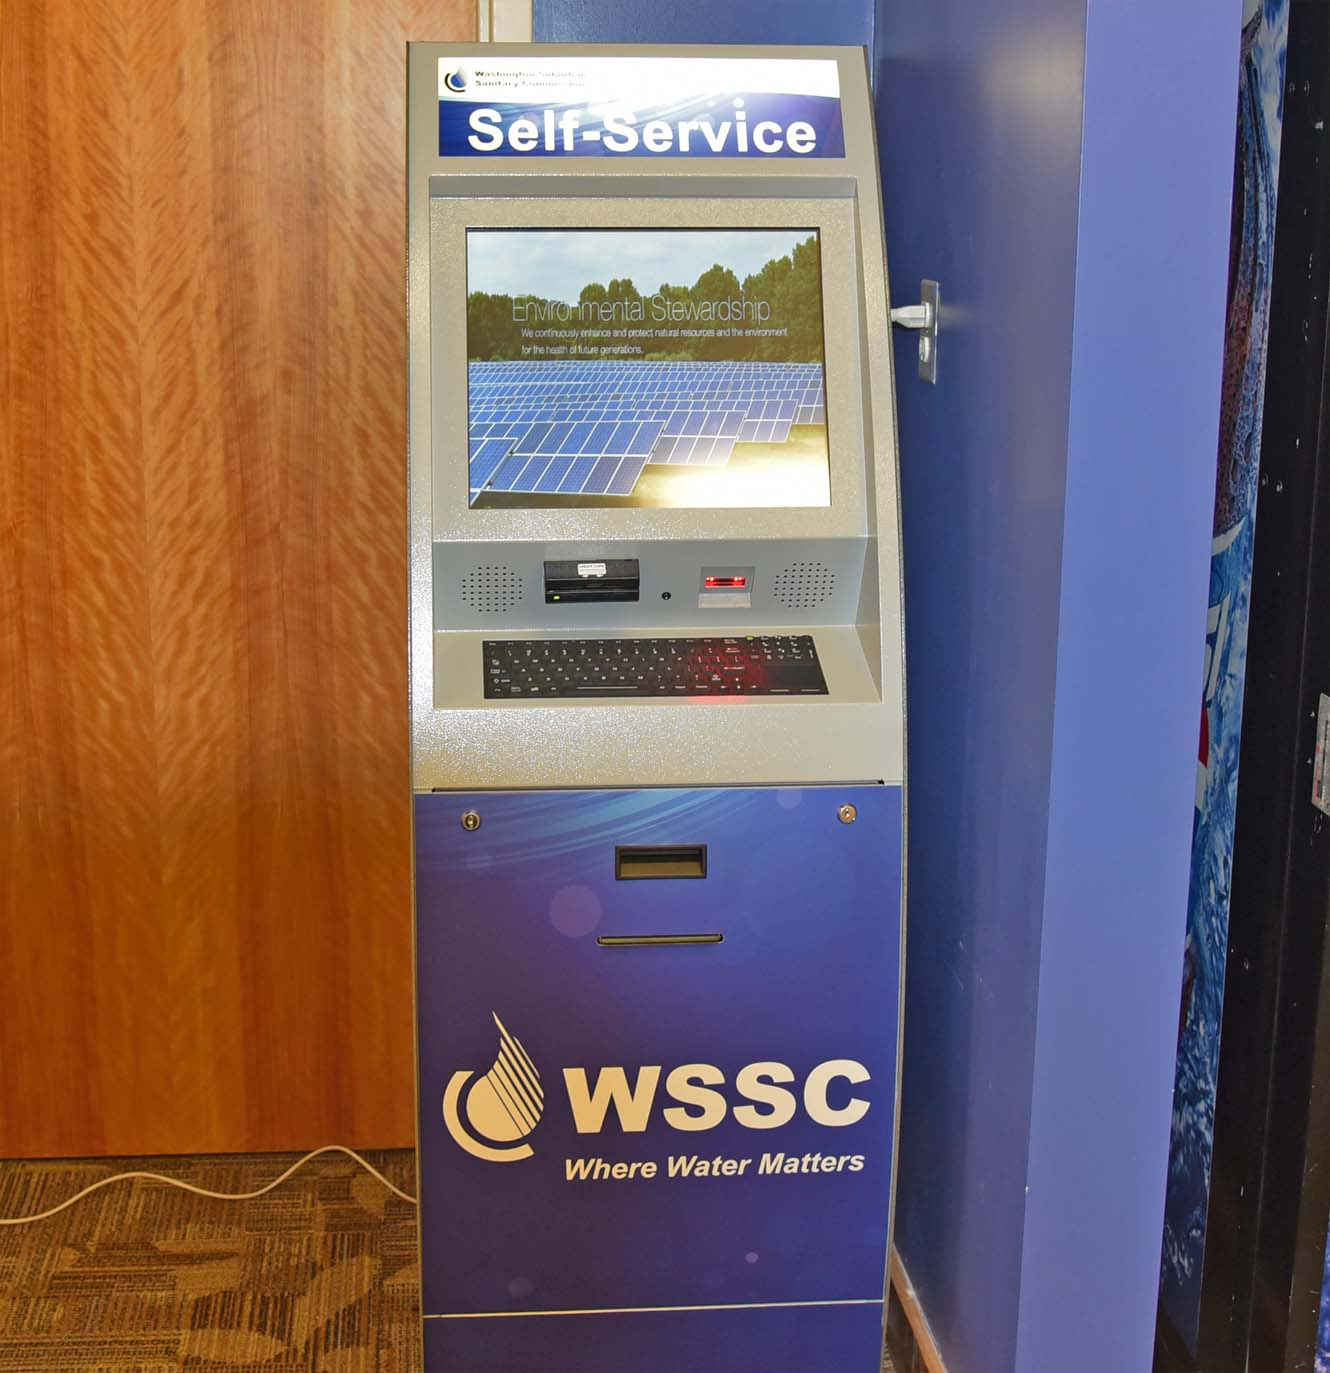 WSSC Kiosk for payment and permit inquiries